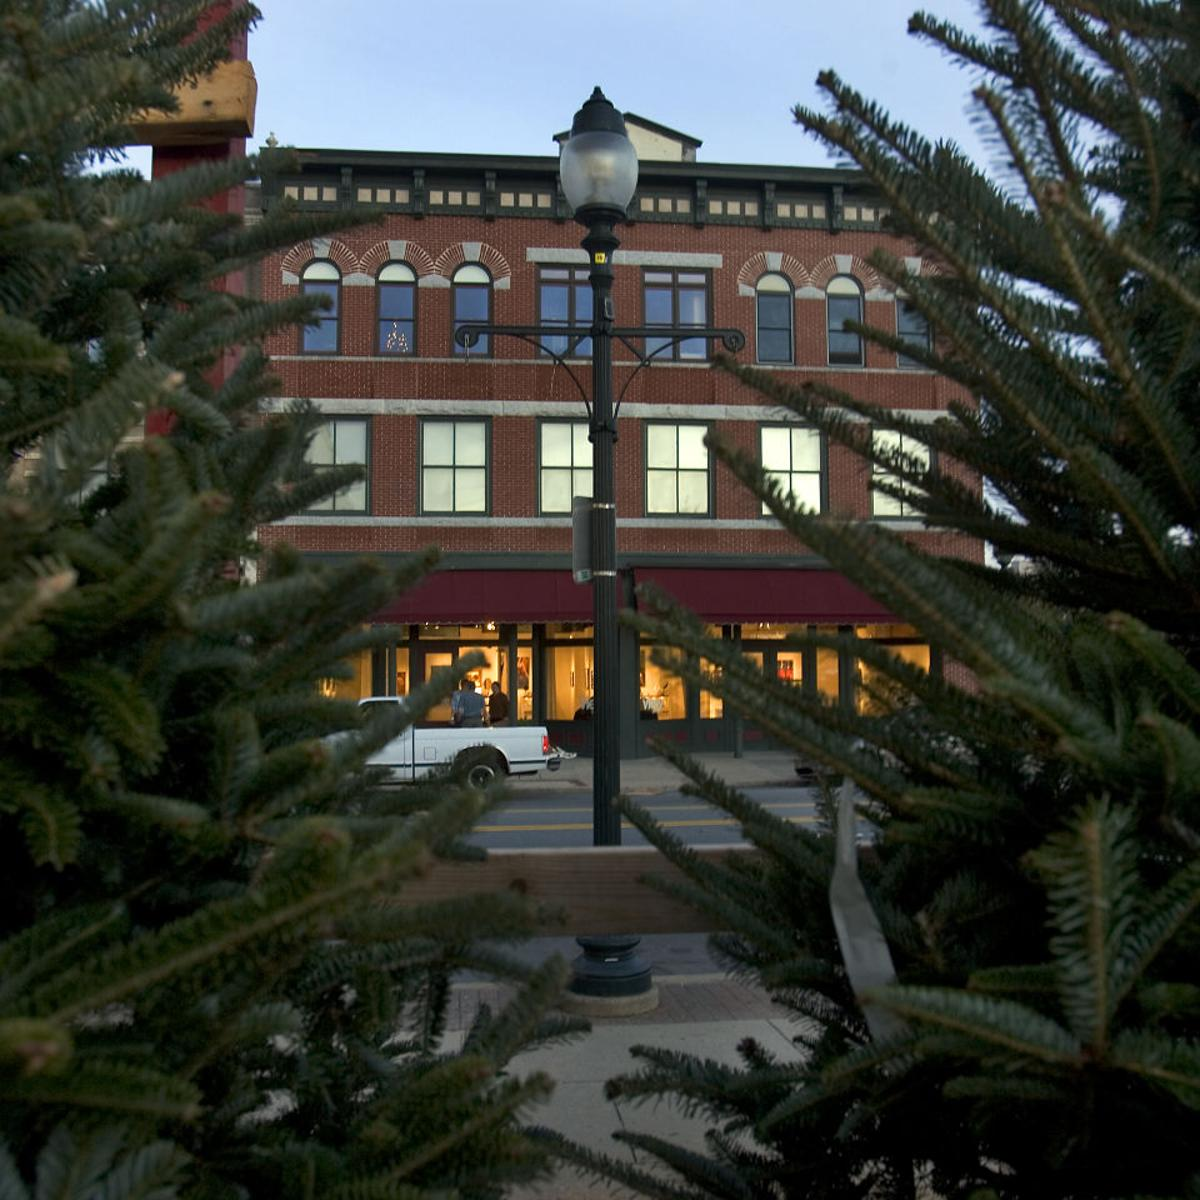 Delancey Street Christmas Trees.Delancey Street Spruces Up Downtown Business Greensboro Com